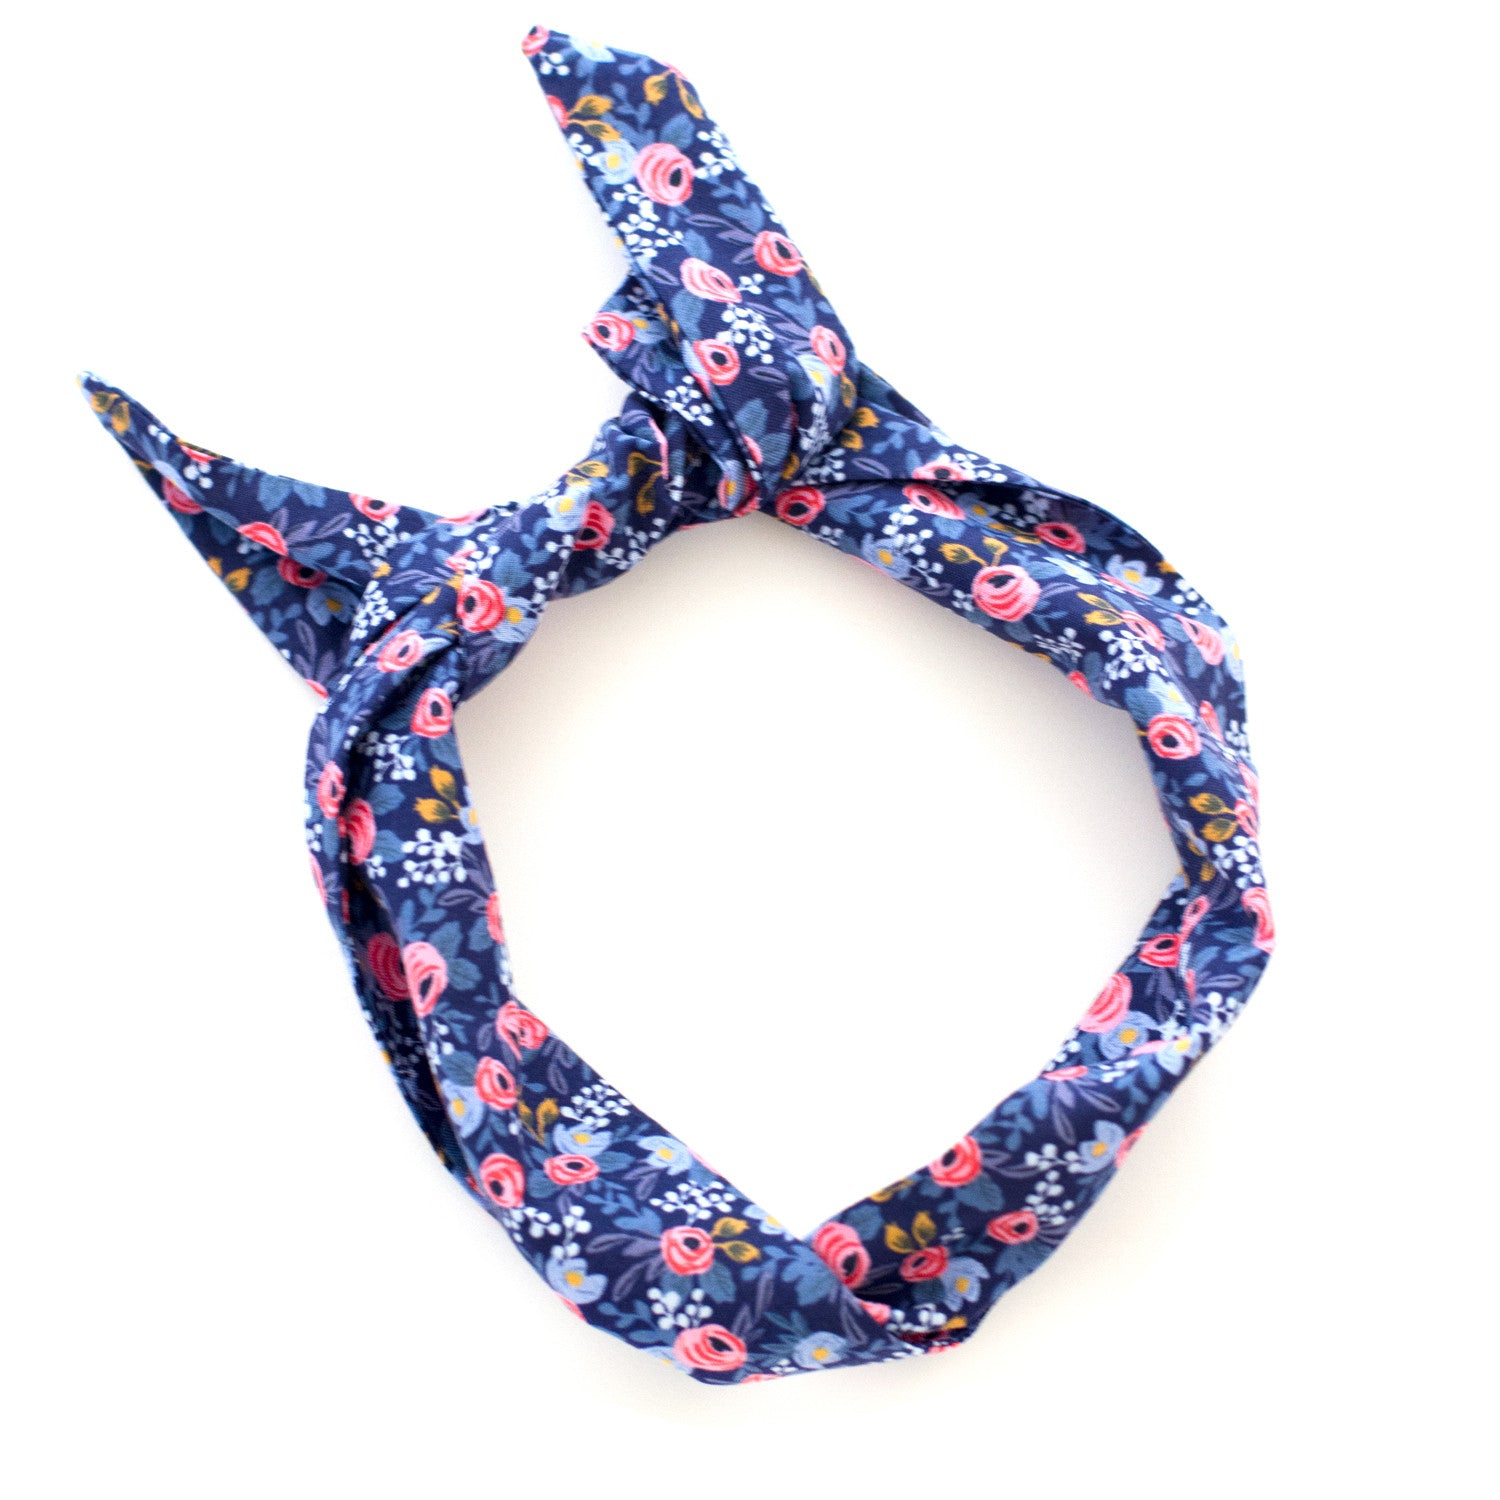 Floral Print Navy and Pink Wire Headband | Rifle Paper Co Fabric ...